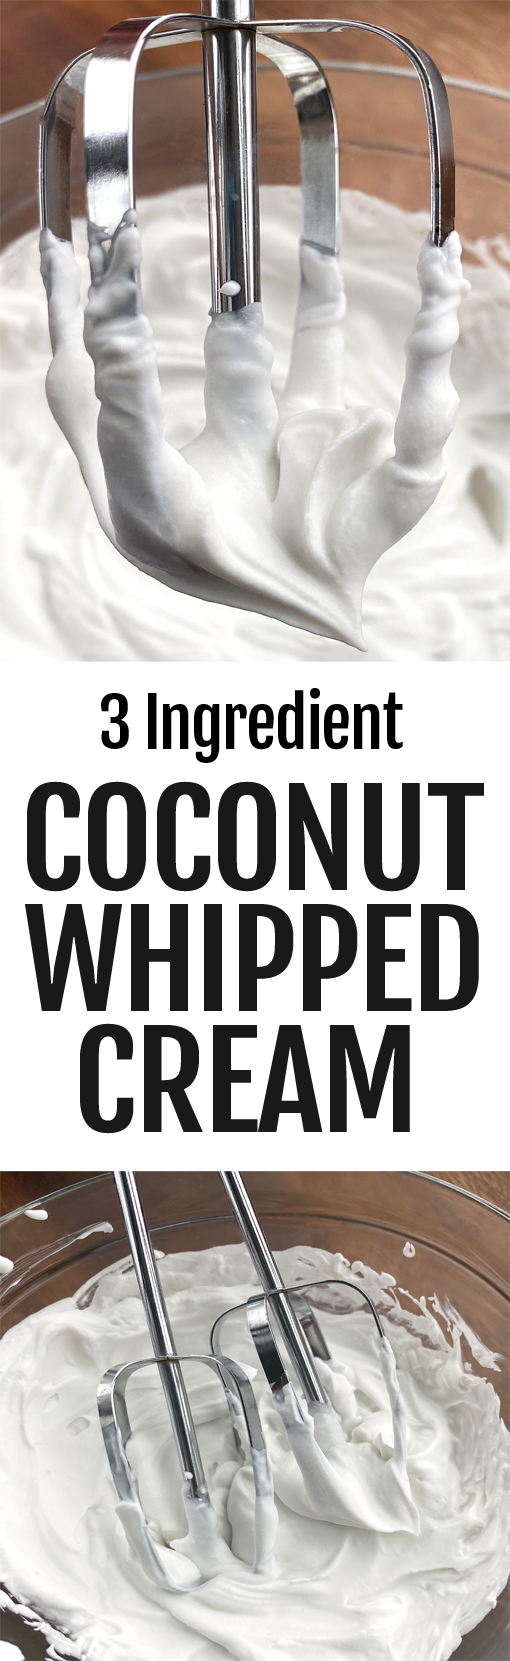 How To Make Dairy Free Coconut Whipped Cream